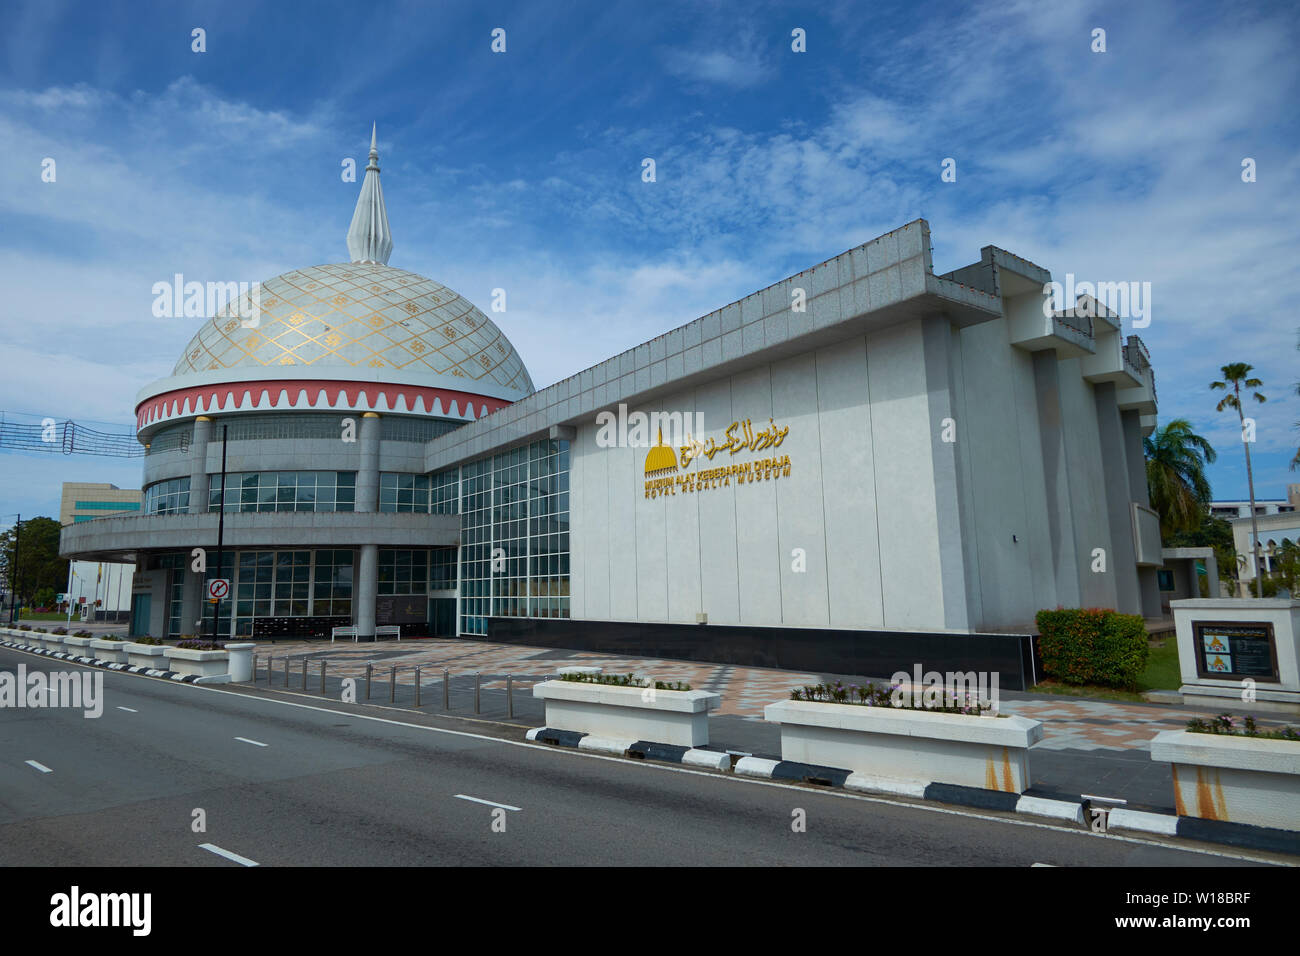 Exterior view of the domed Royal Regalia Museum in Bandar Seri Begawan, Brunei - Stock Image